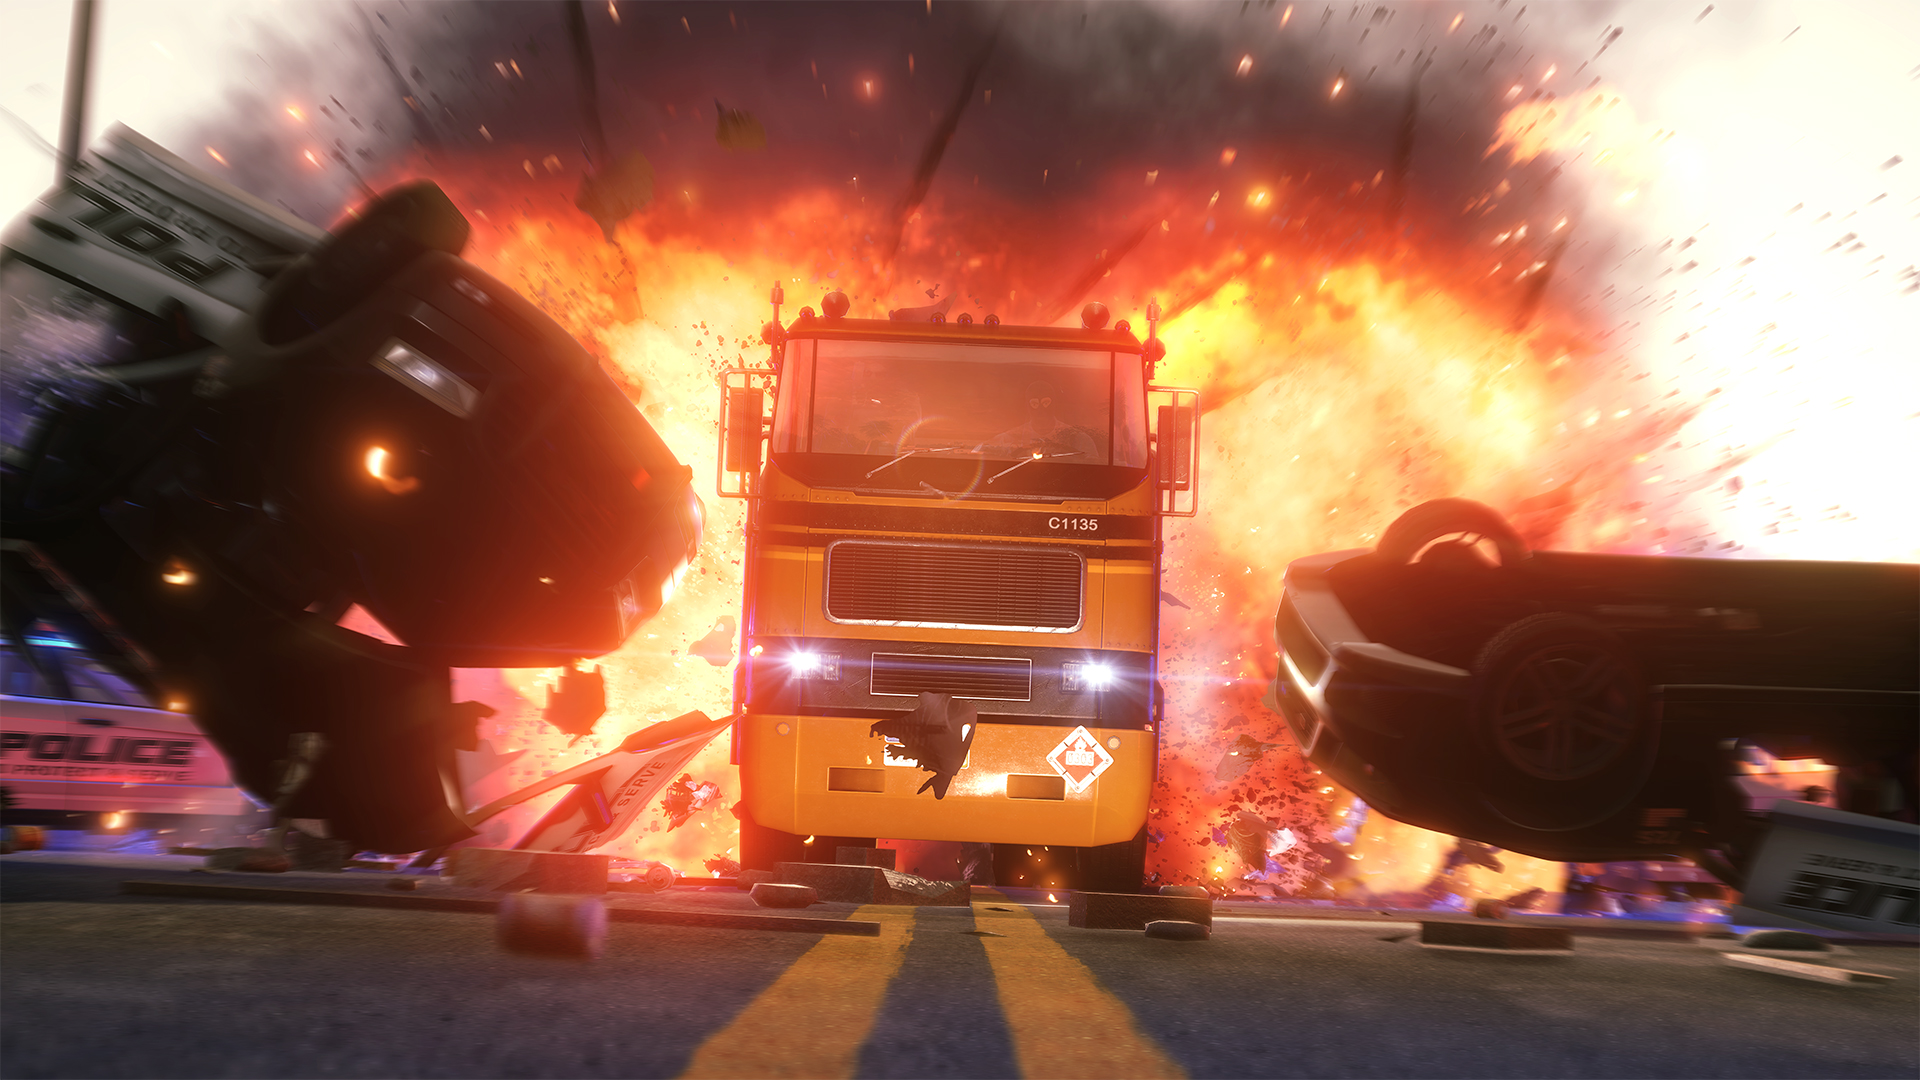 tgs_hotwire_glades_truck_hit_1080p